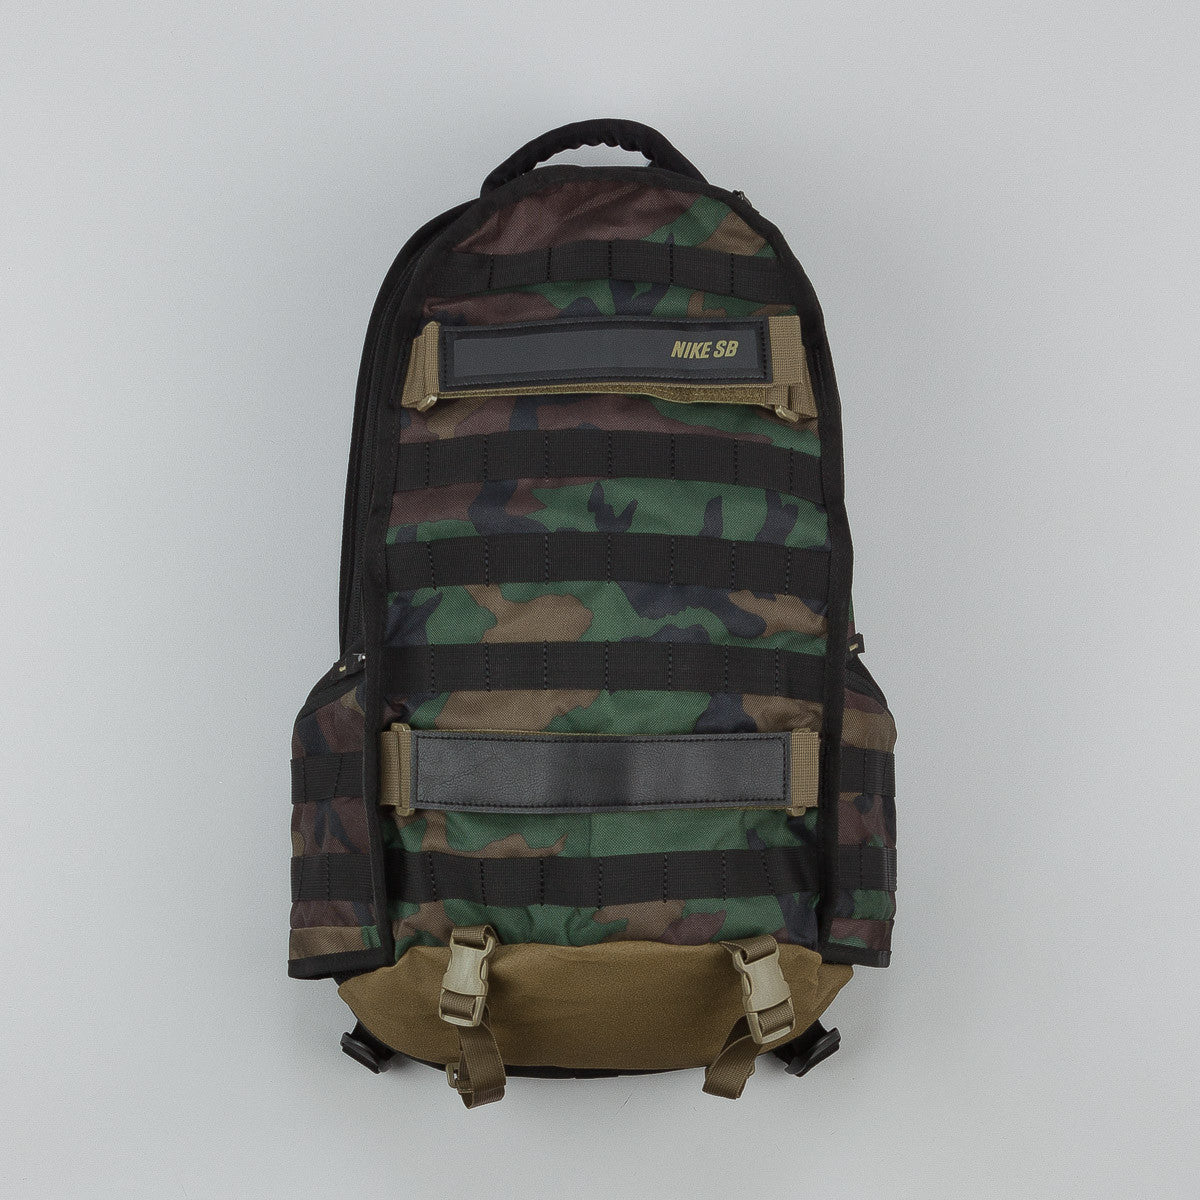 Nike SB RPM Graphic Backpack